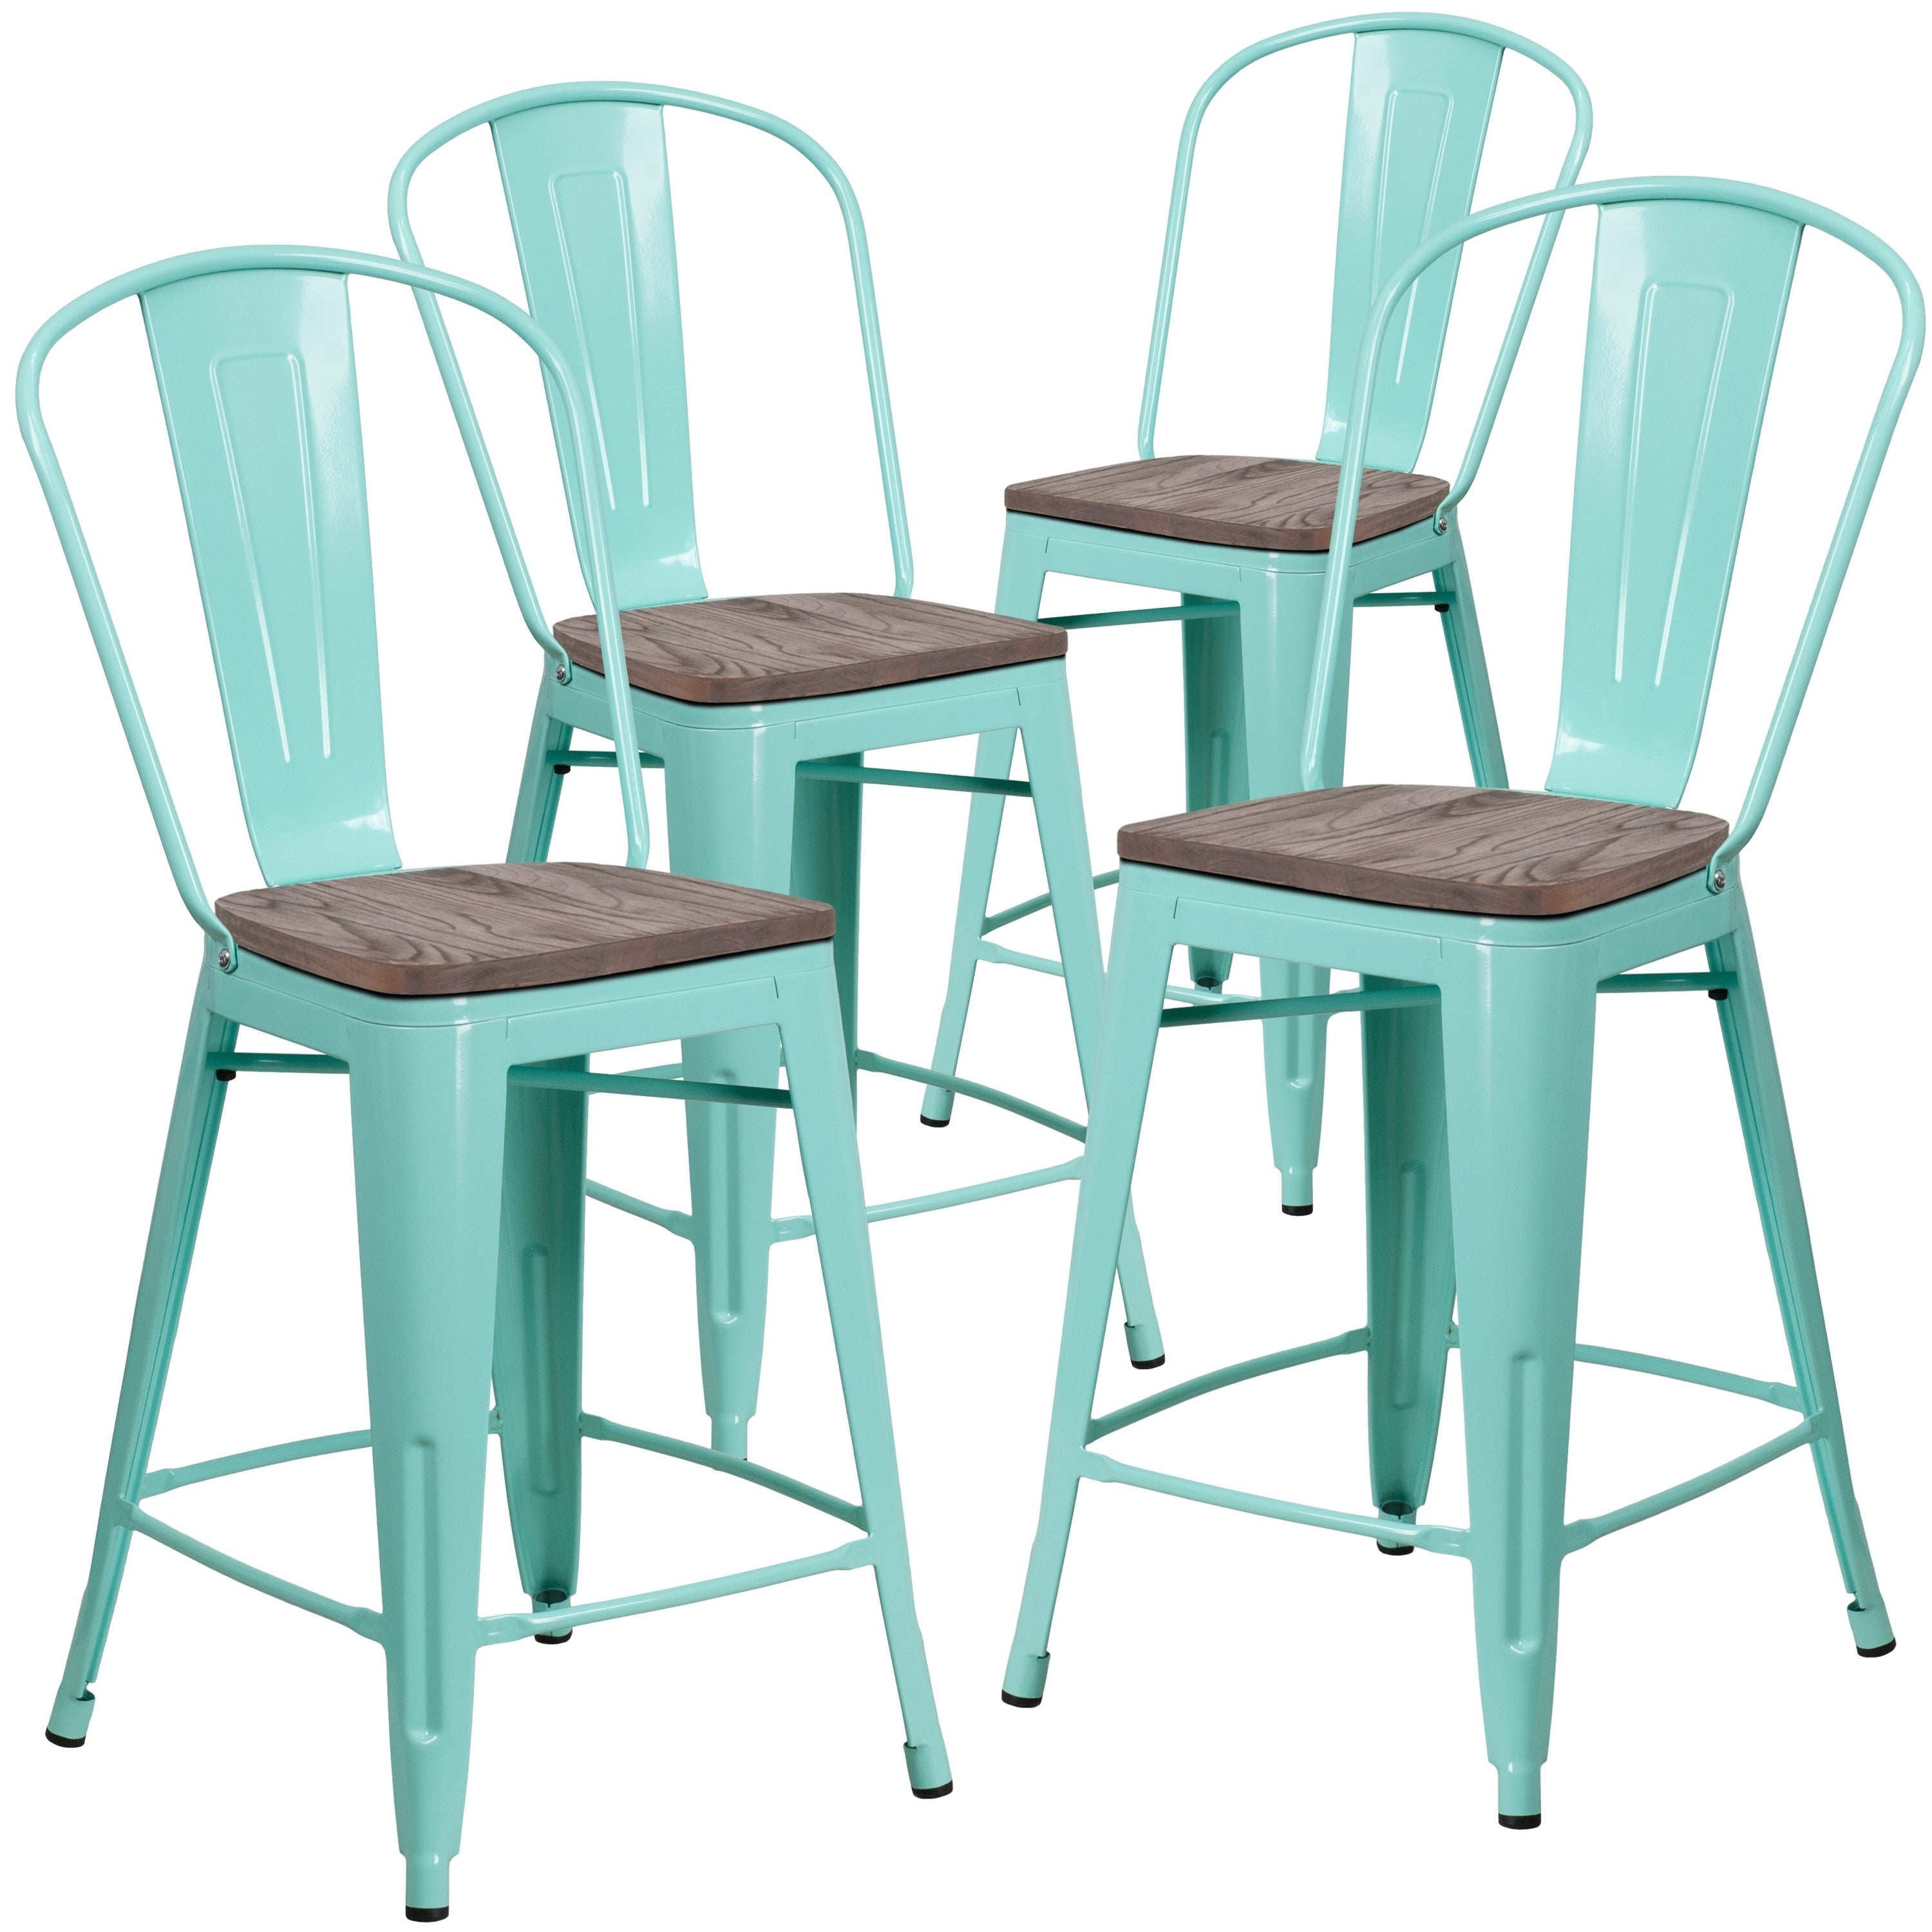 4 Pk 24 High Metal Counter Height Stool With Back And Wood Seat Ebay